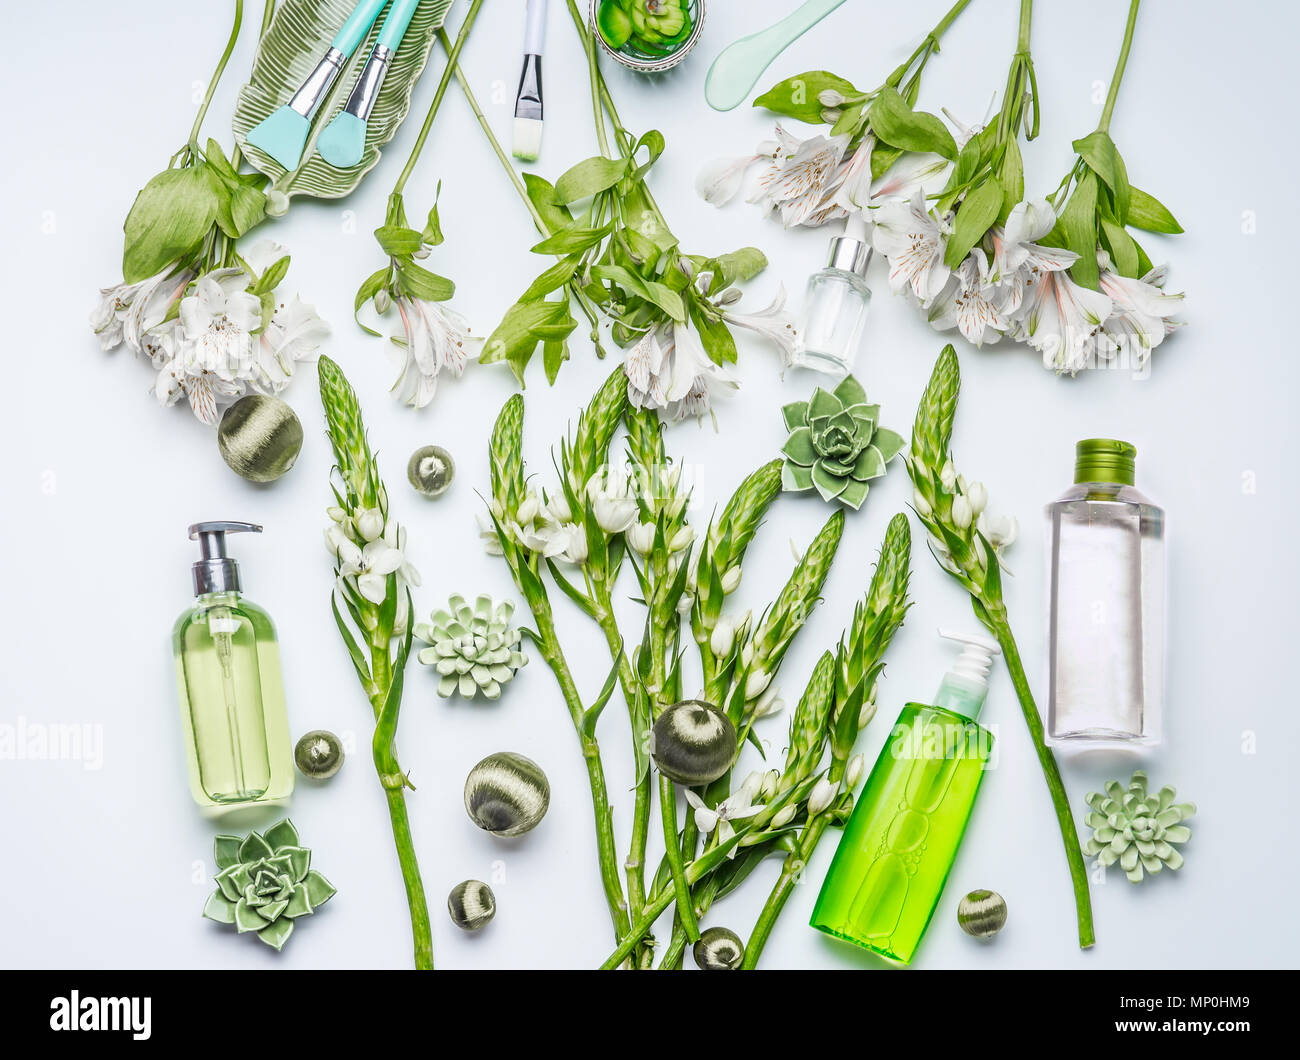 Green Herbal Natural Cosmetic Setting With Bottles Of Facial Toner